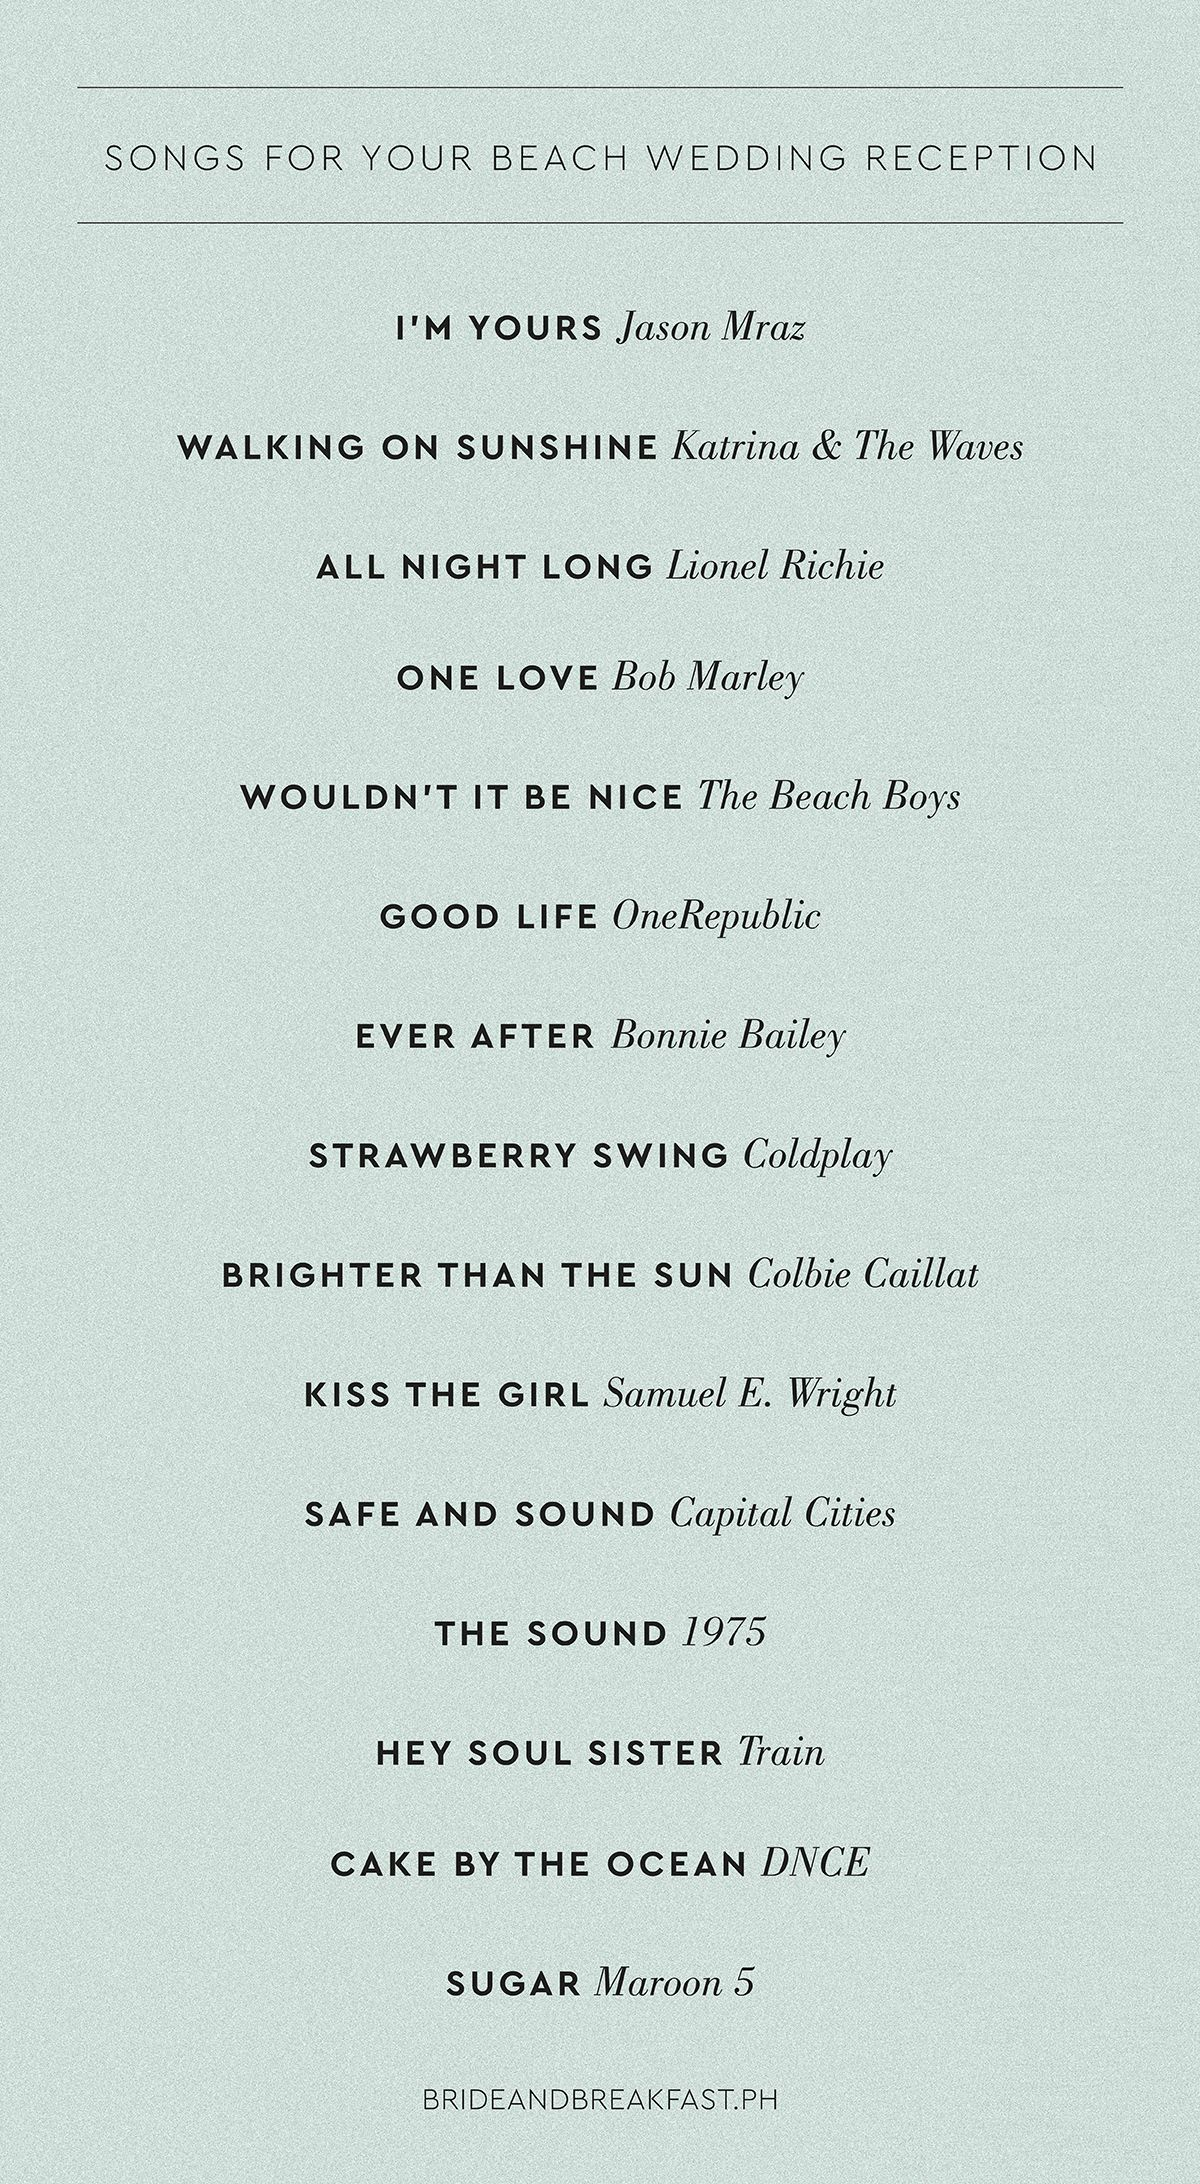 Pin by Tina Chlosta on Wedding Songs in 2020 Beach